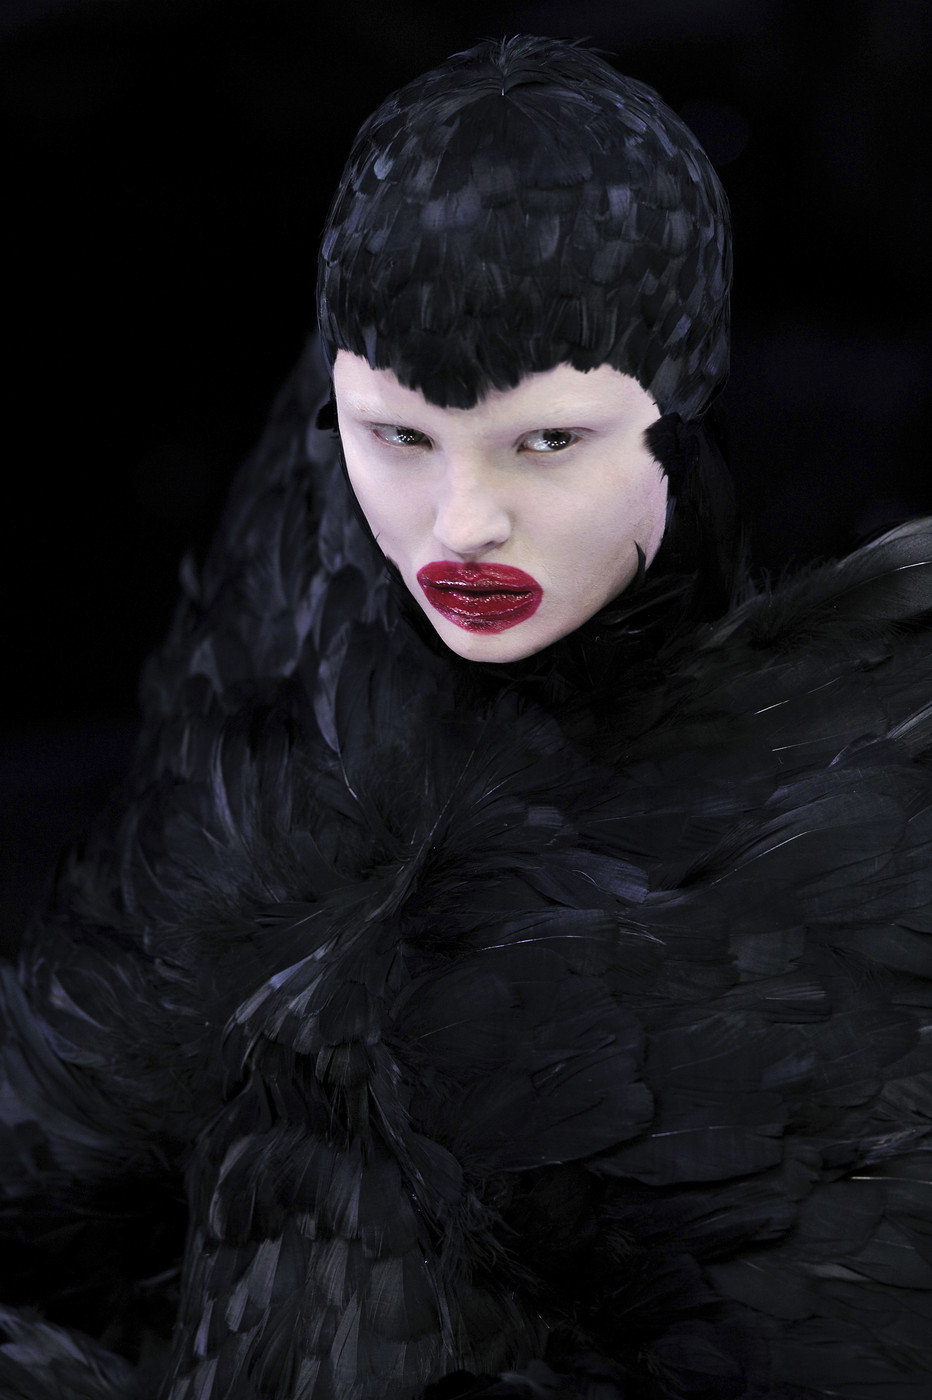 apsolvo: The horn of plenty Alexander Mcqueen FW 2009